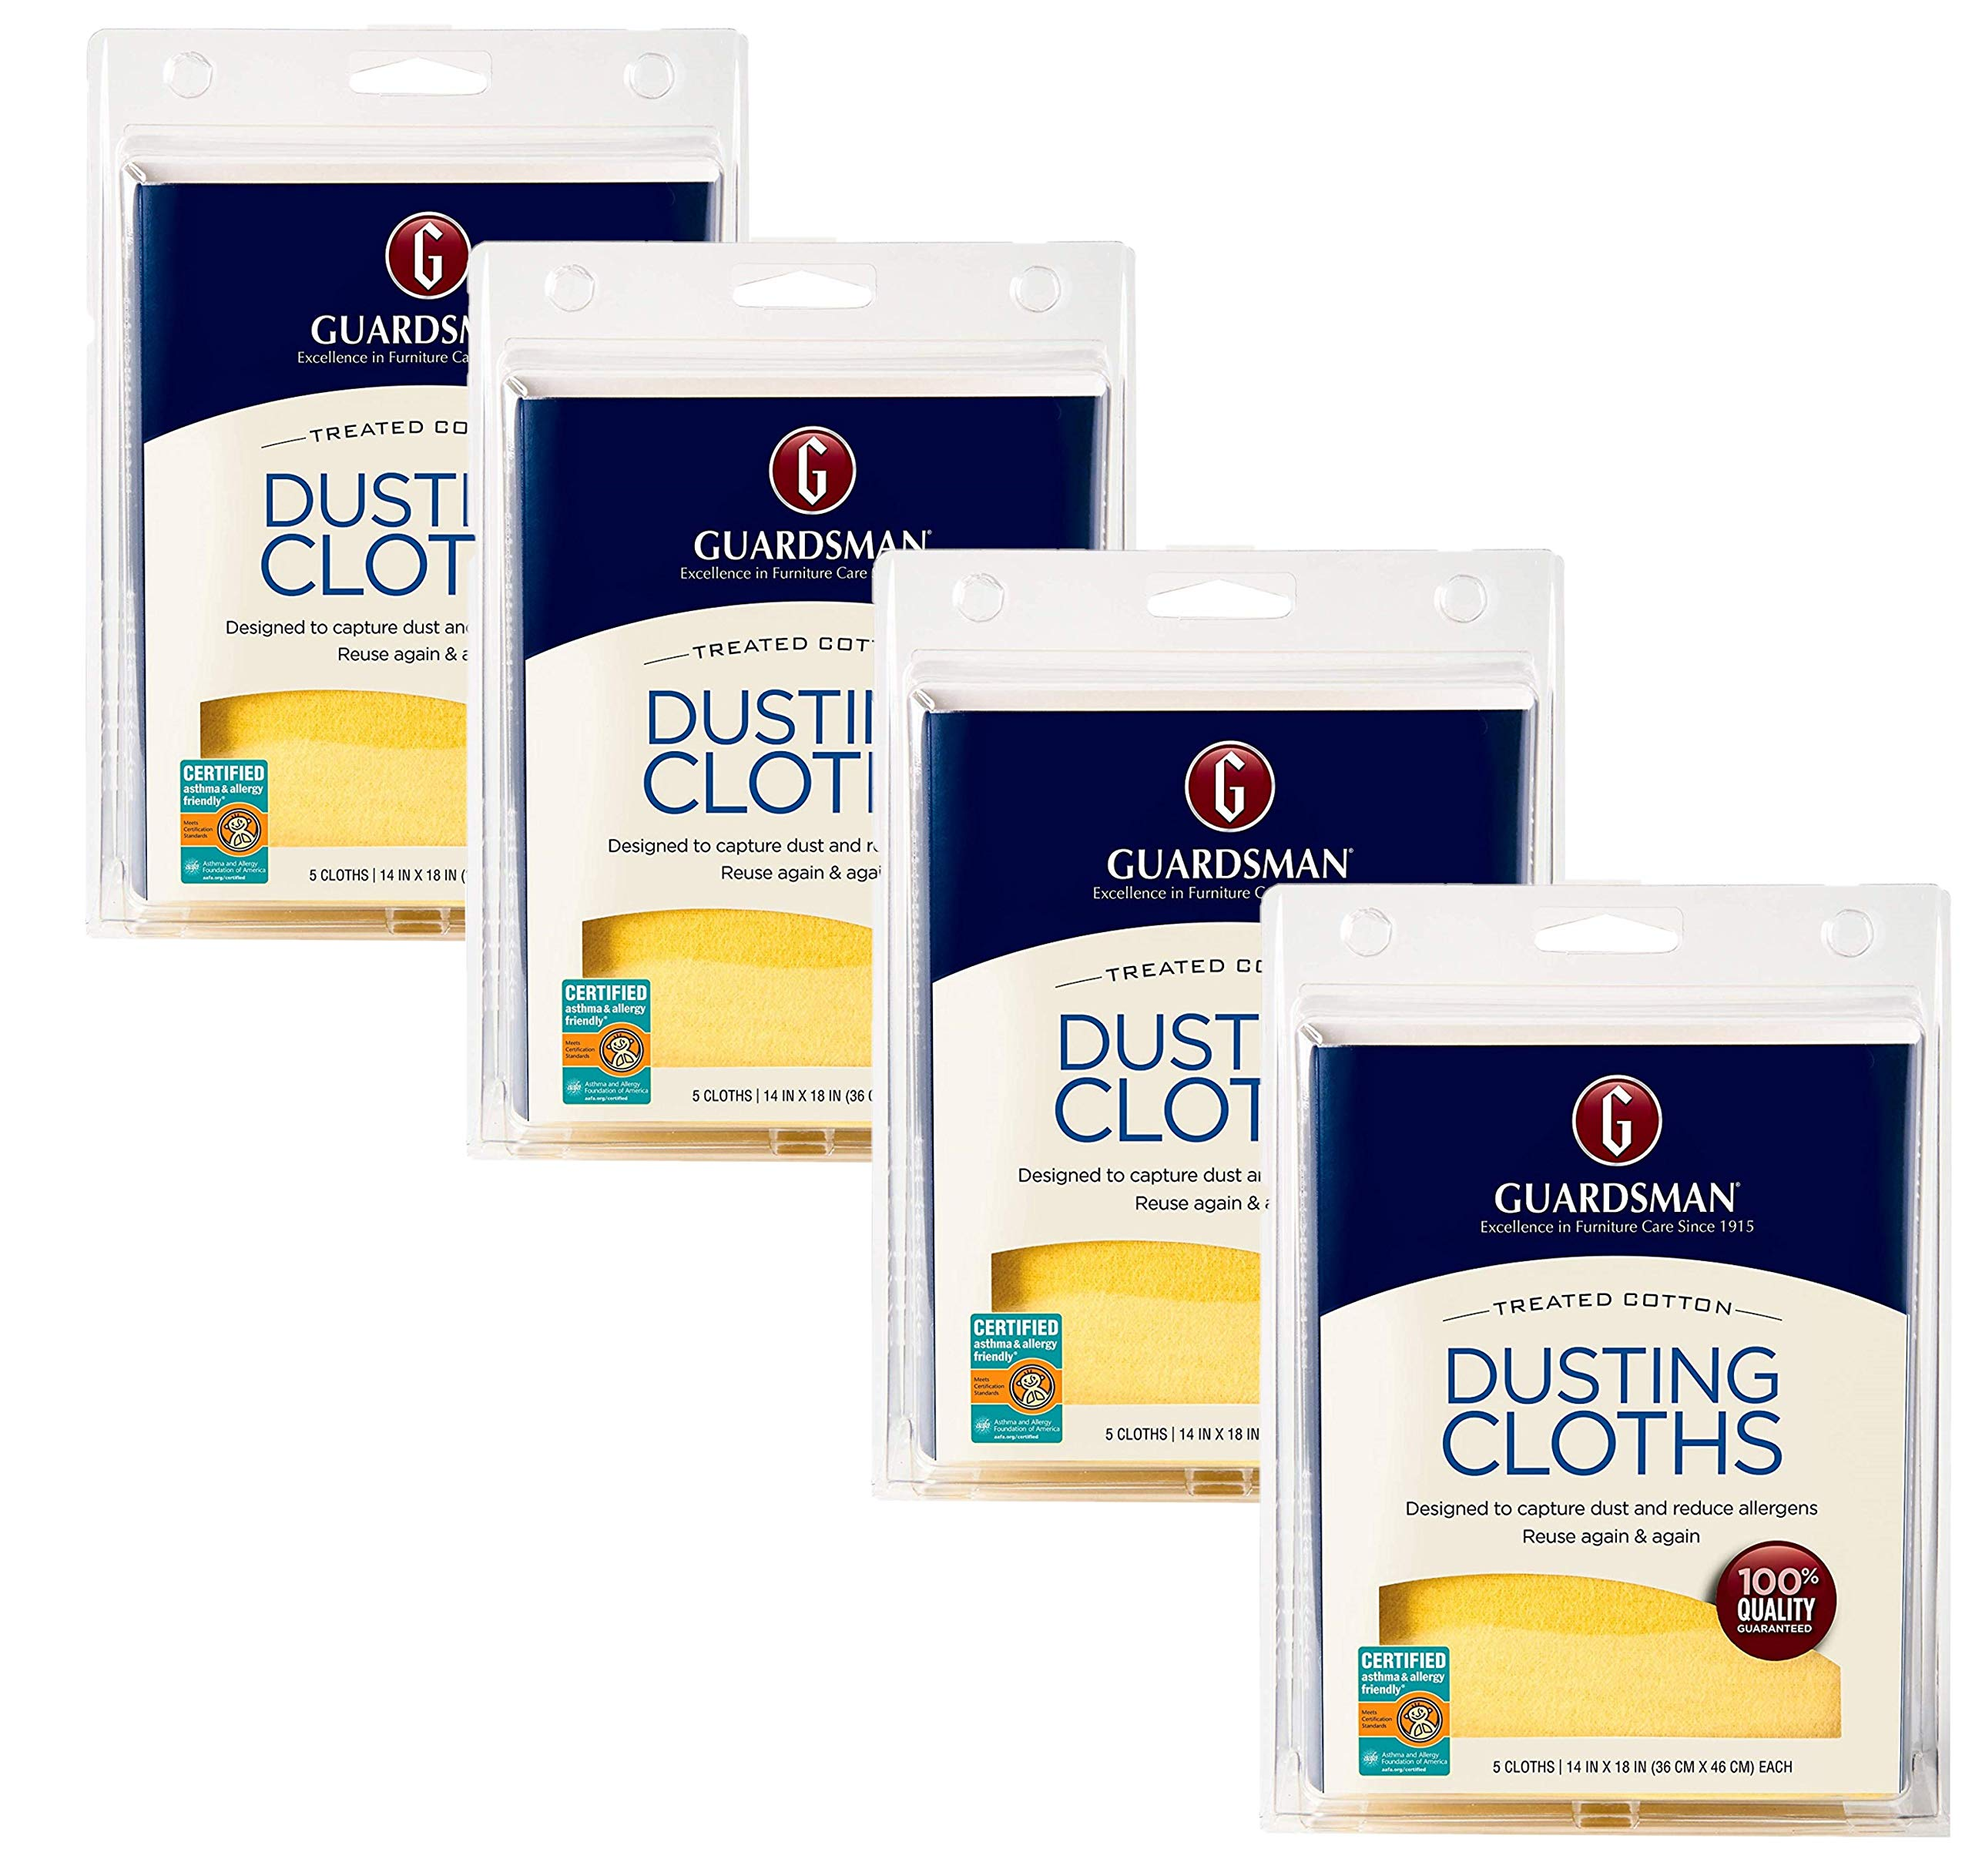 Guardsman Wood Furniture Dusting Cloths - 5 Pre-Treated Cloth - Captures 2X The Dust of a Regular Cloth, Specially Treated, No Sprays or Odors - 462700, Pack of 4 by Guardsman